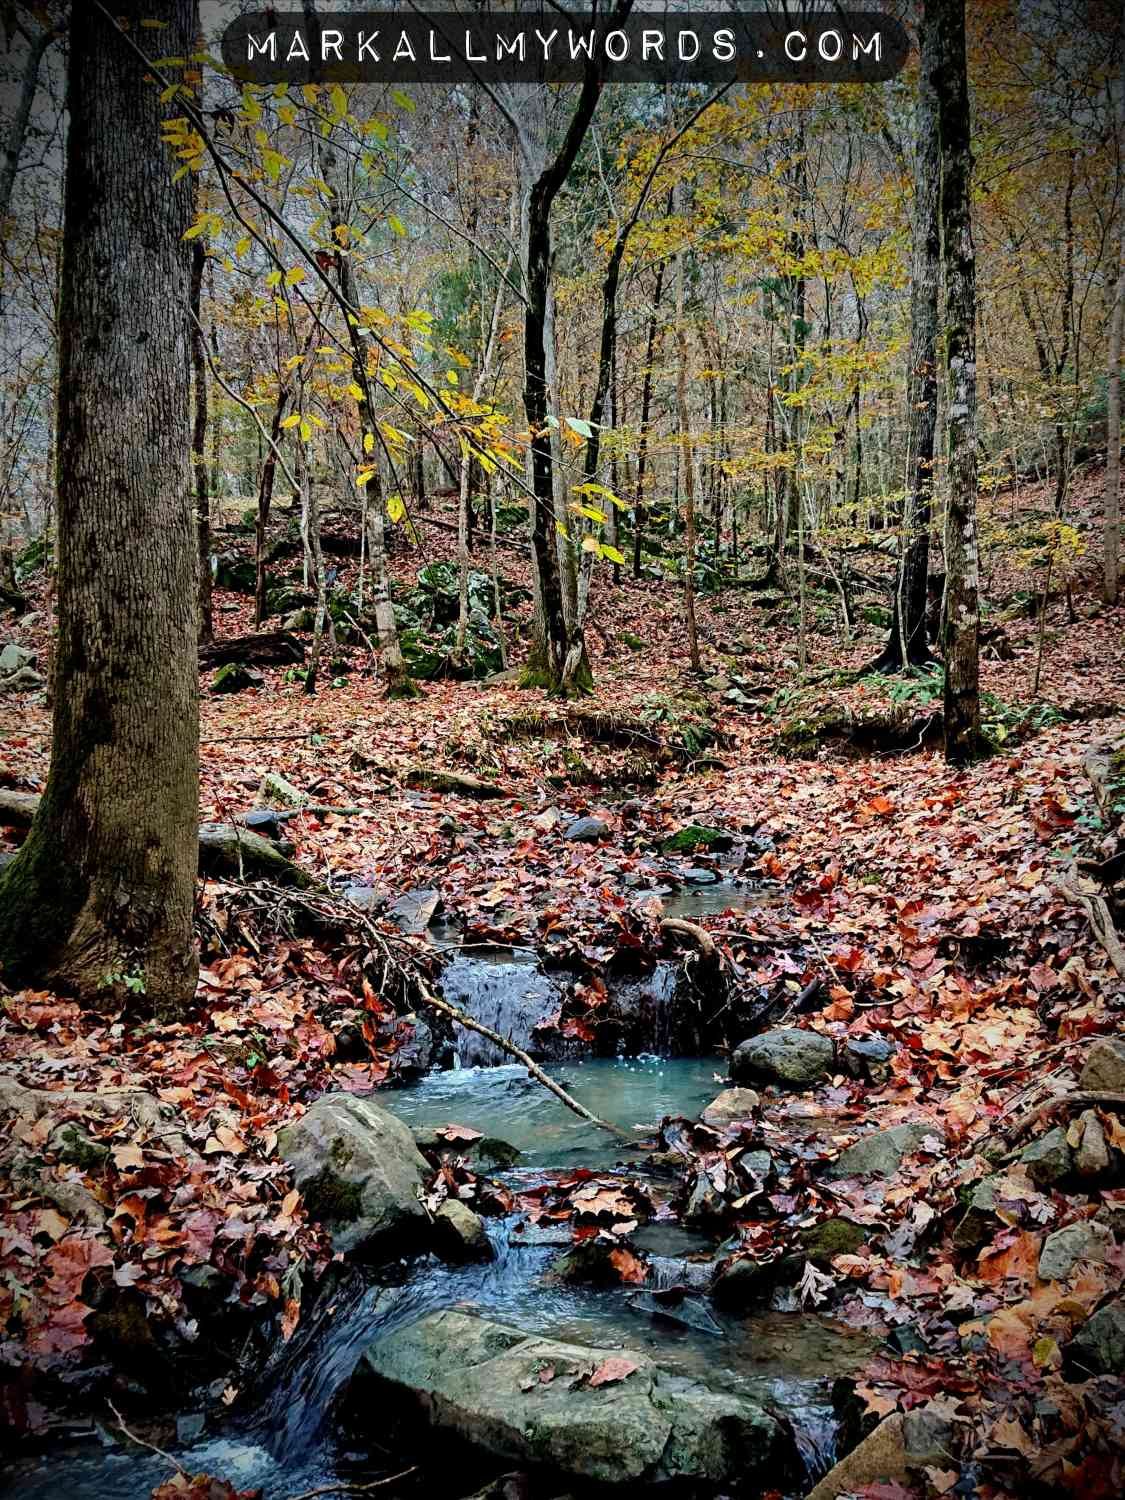 Creek with fallen leaves and stones